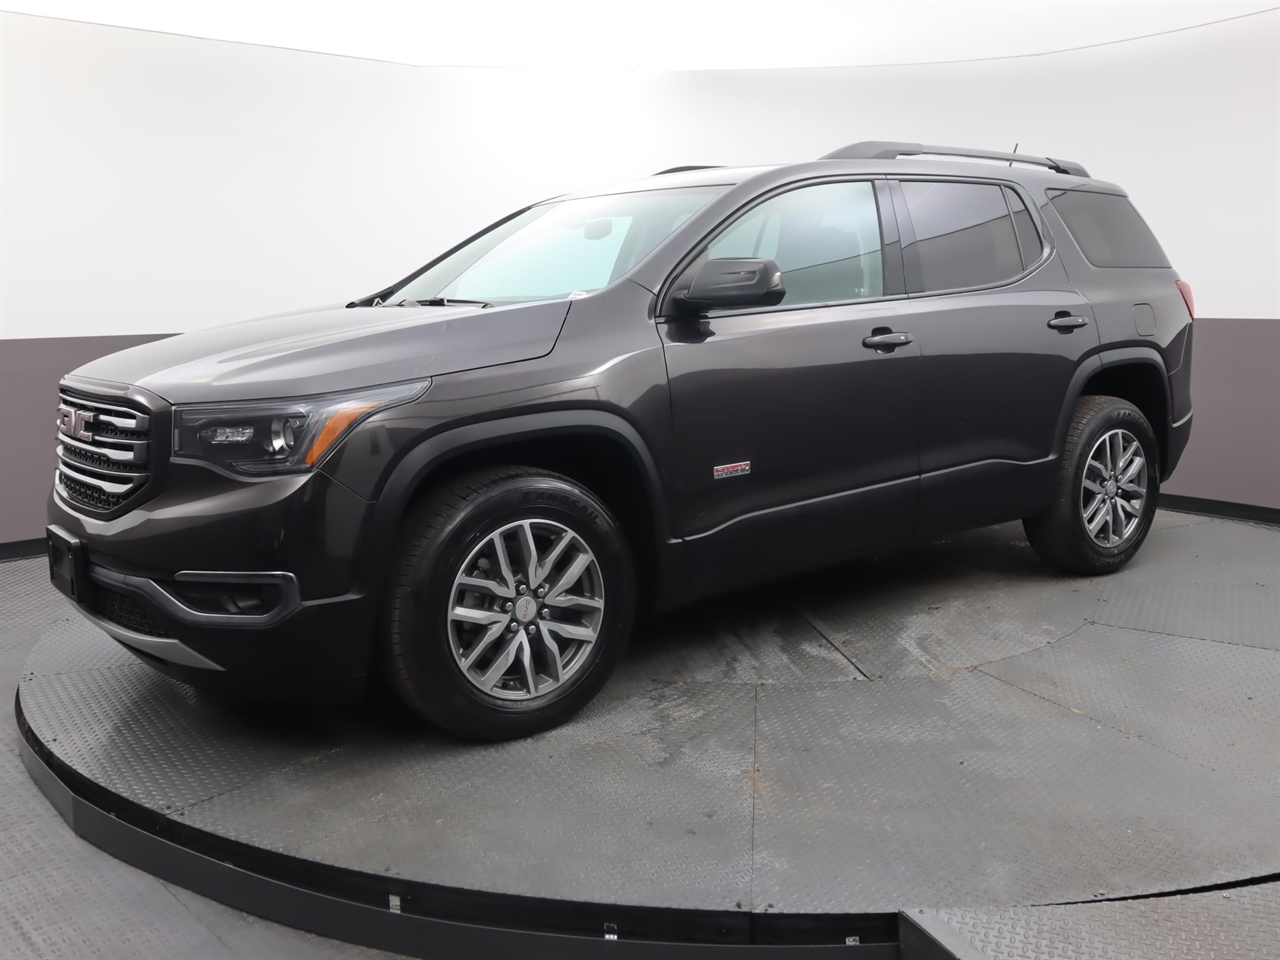 Used GMC ACADIA 2017 MIAMI SLE